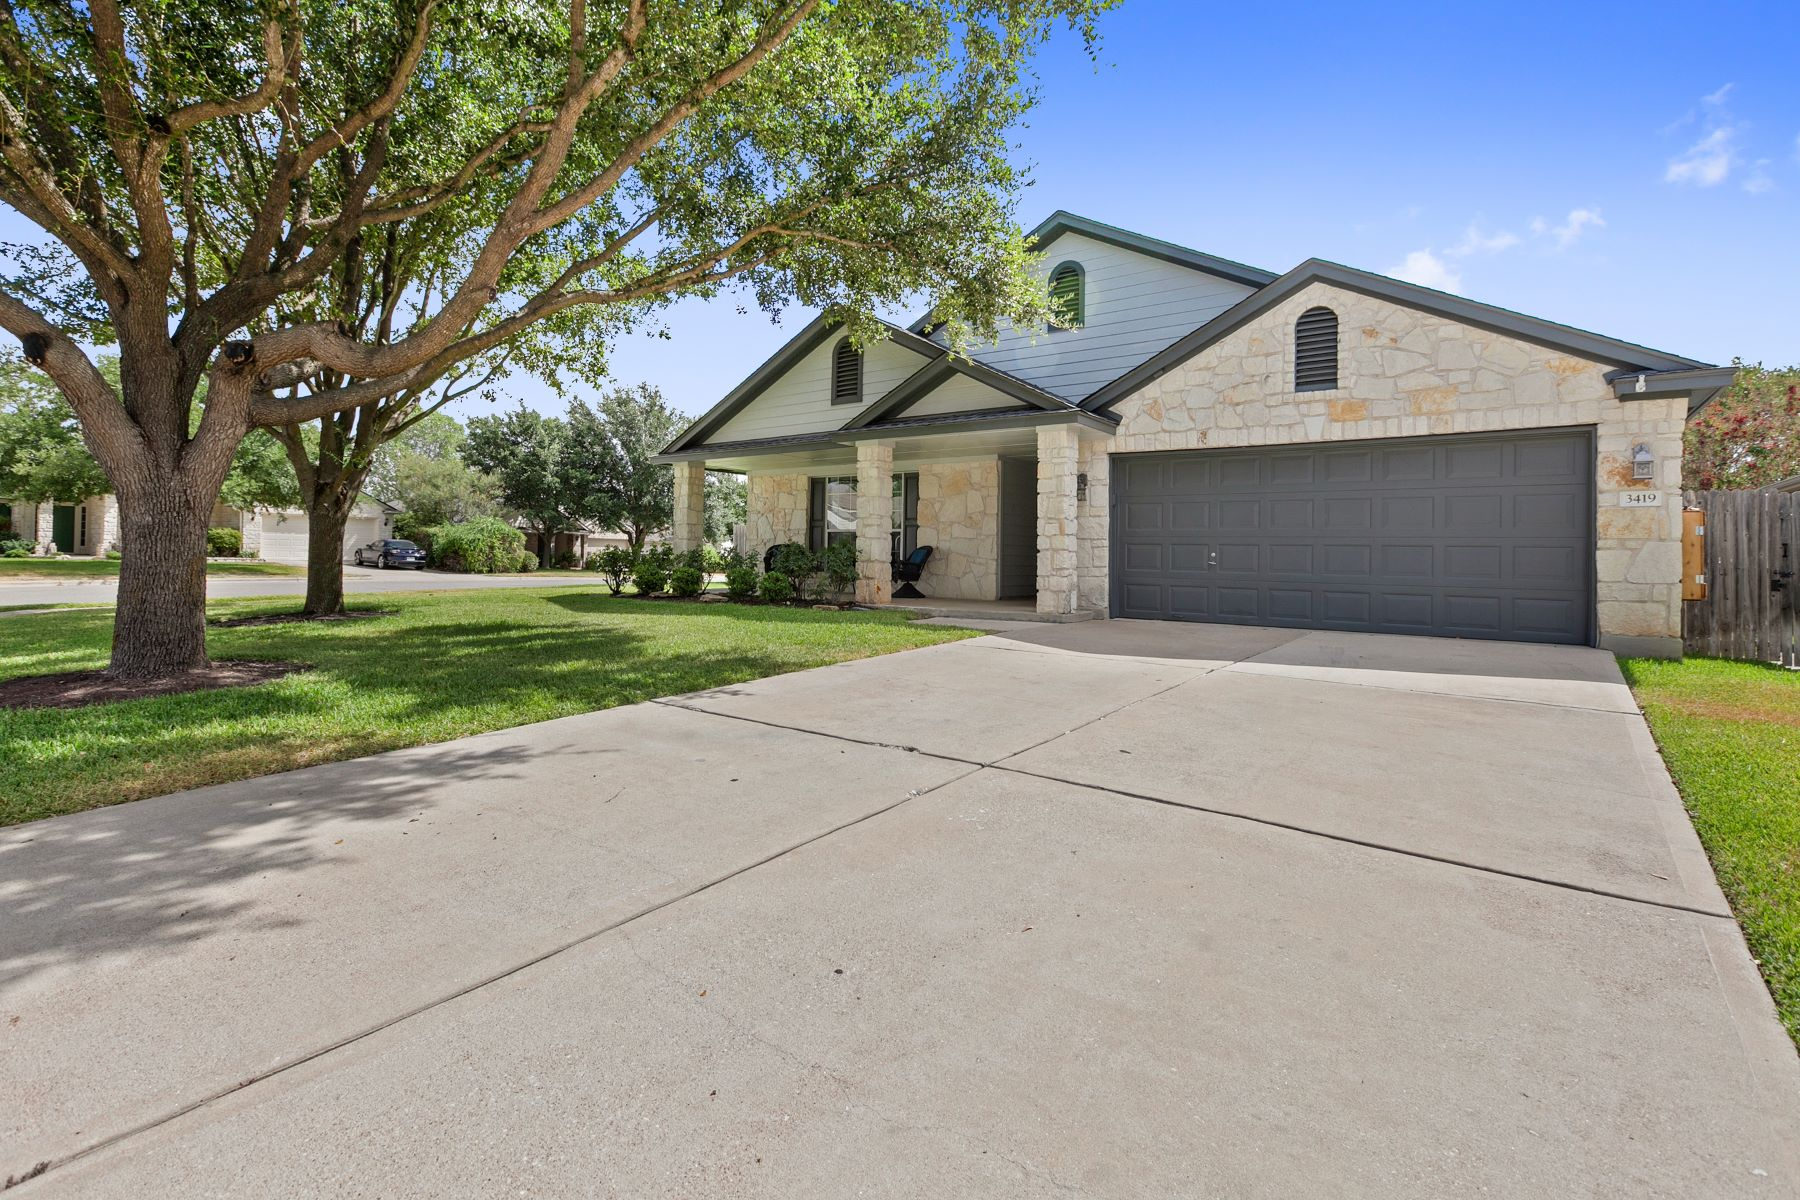 Single Family Homes for Active at 3419 Rod Carew Drive, Round Rock, TX 78665 3419 Rod Carew Drive Round Rock, Texas 78665 United States